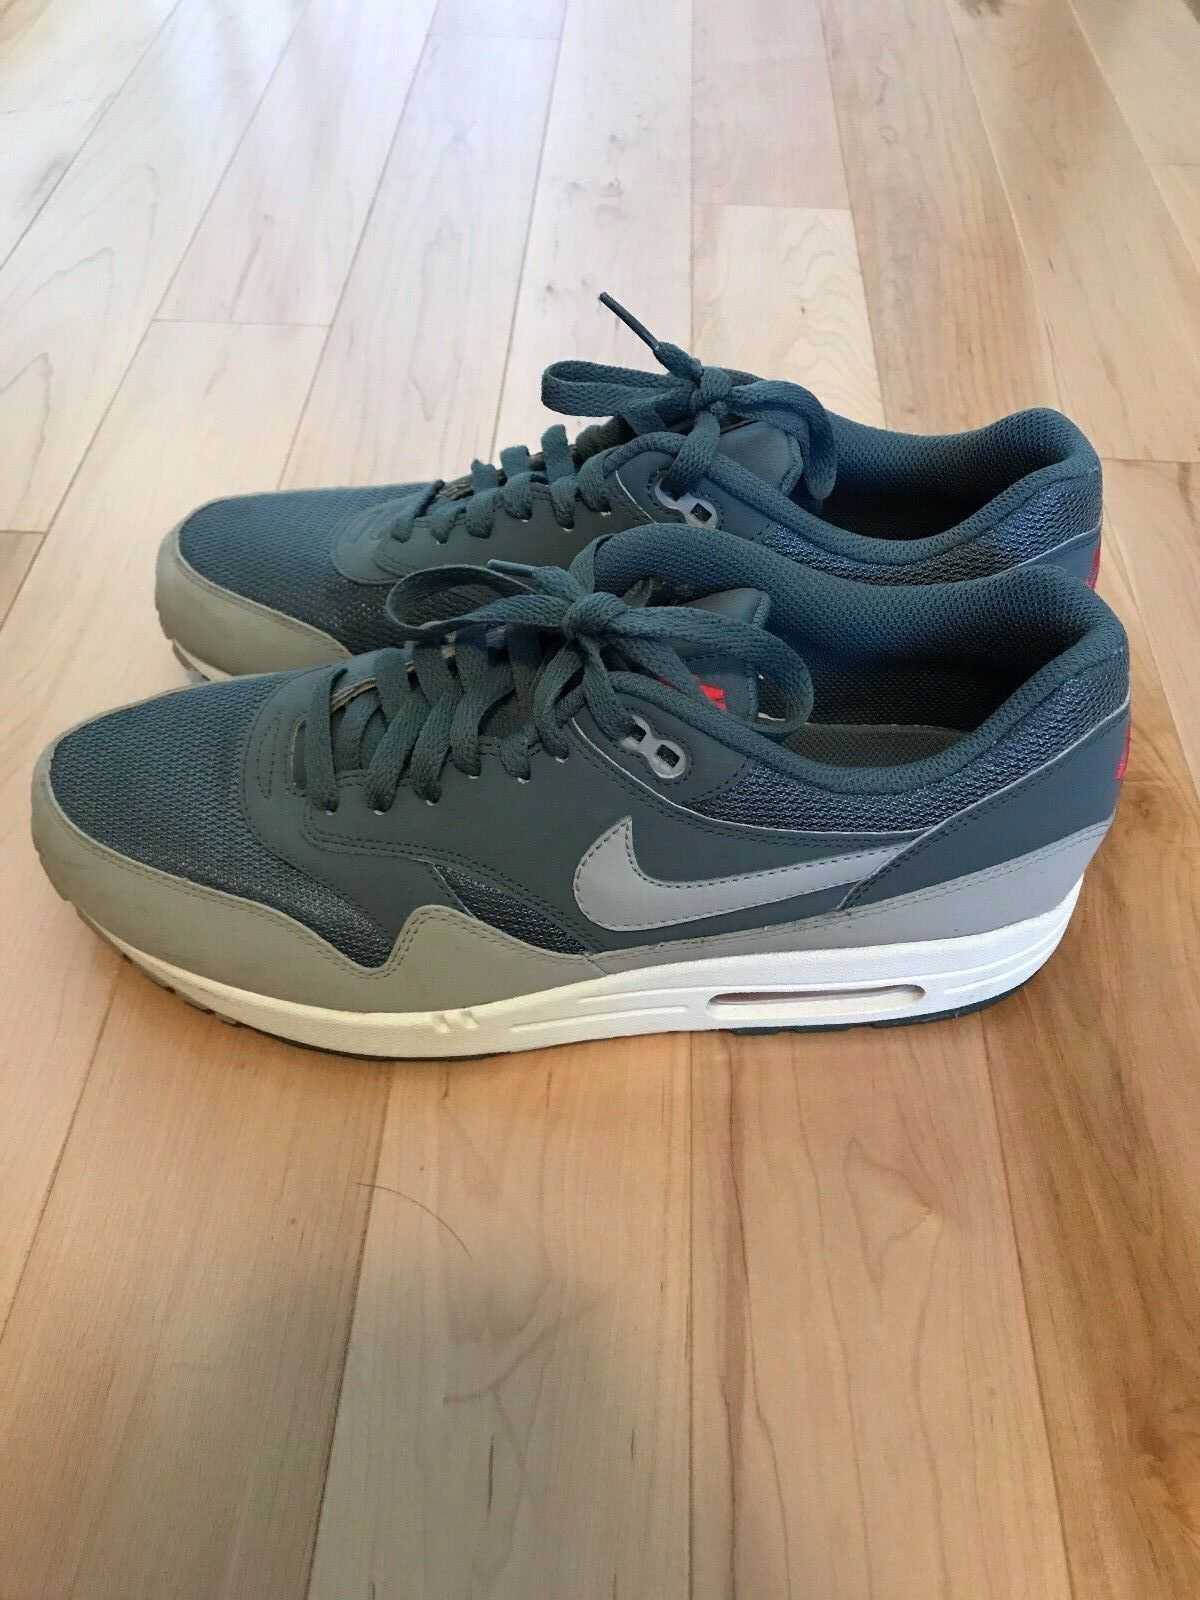 AUTHENTIC Nike Air Max 1 QS Comfortable New shoes for men and women, limited time discount